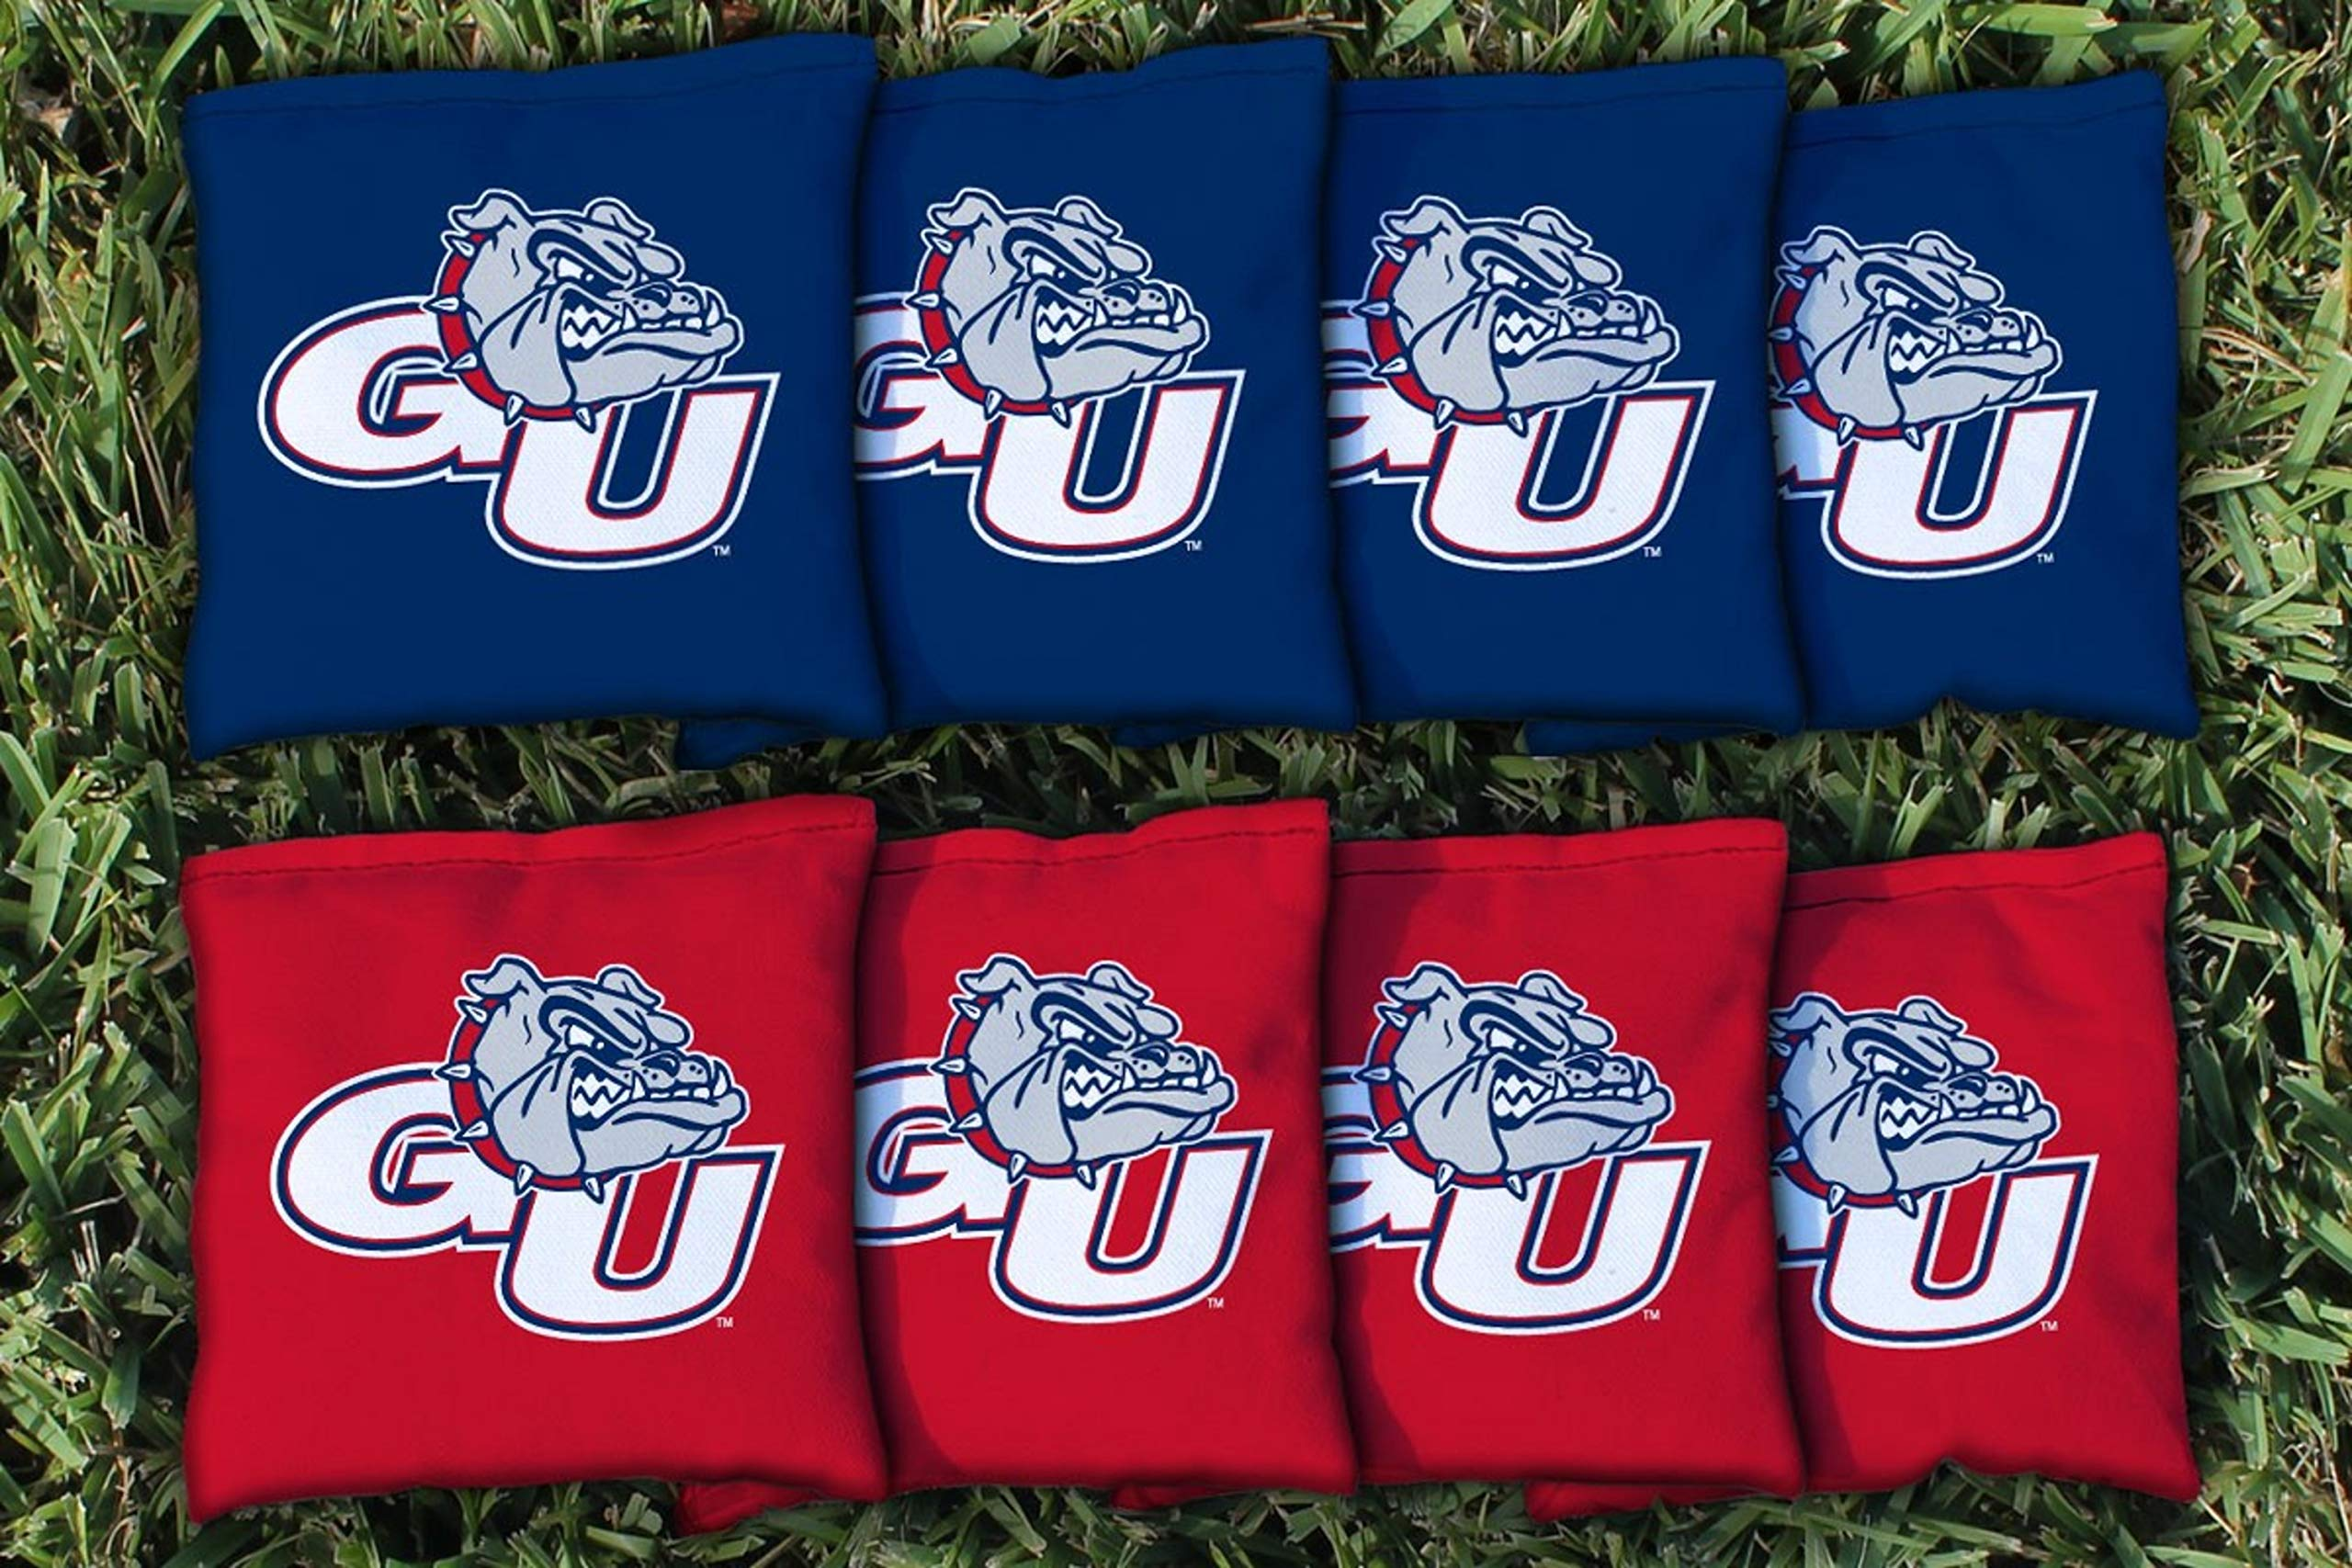 Victory Tailgate NCAA Regulation Cornhole Game Bag Set (8 Bags Included, Corn-Filled) - Gonzaga University Zags by Victory Tailgate (Image #1)